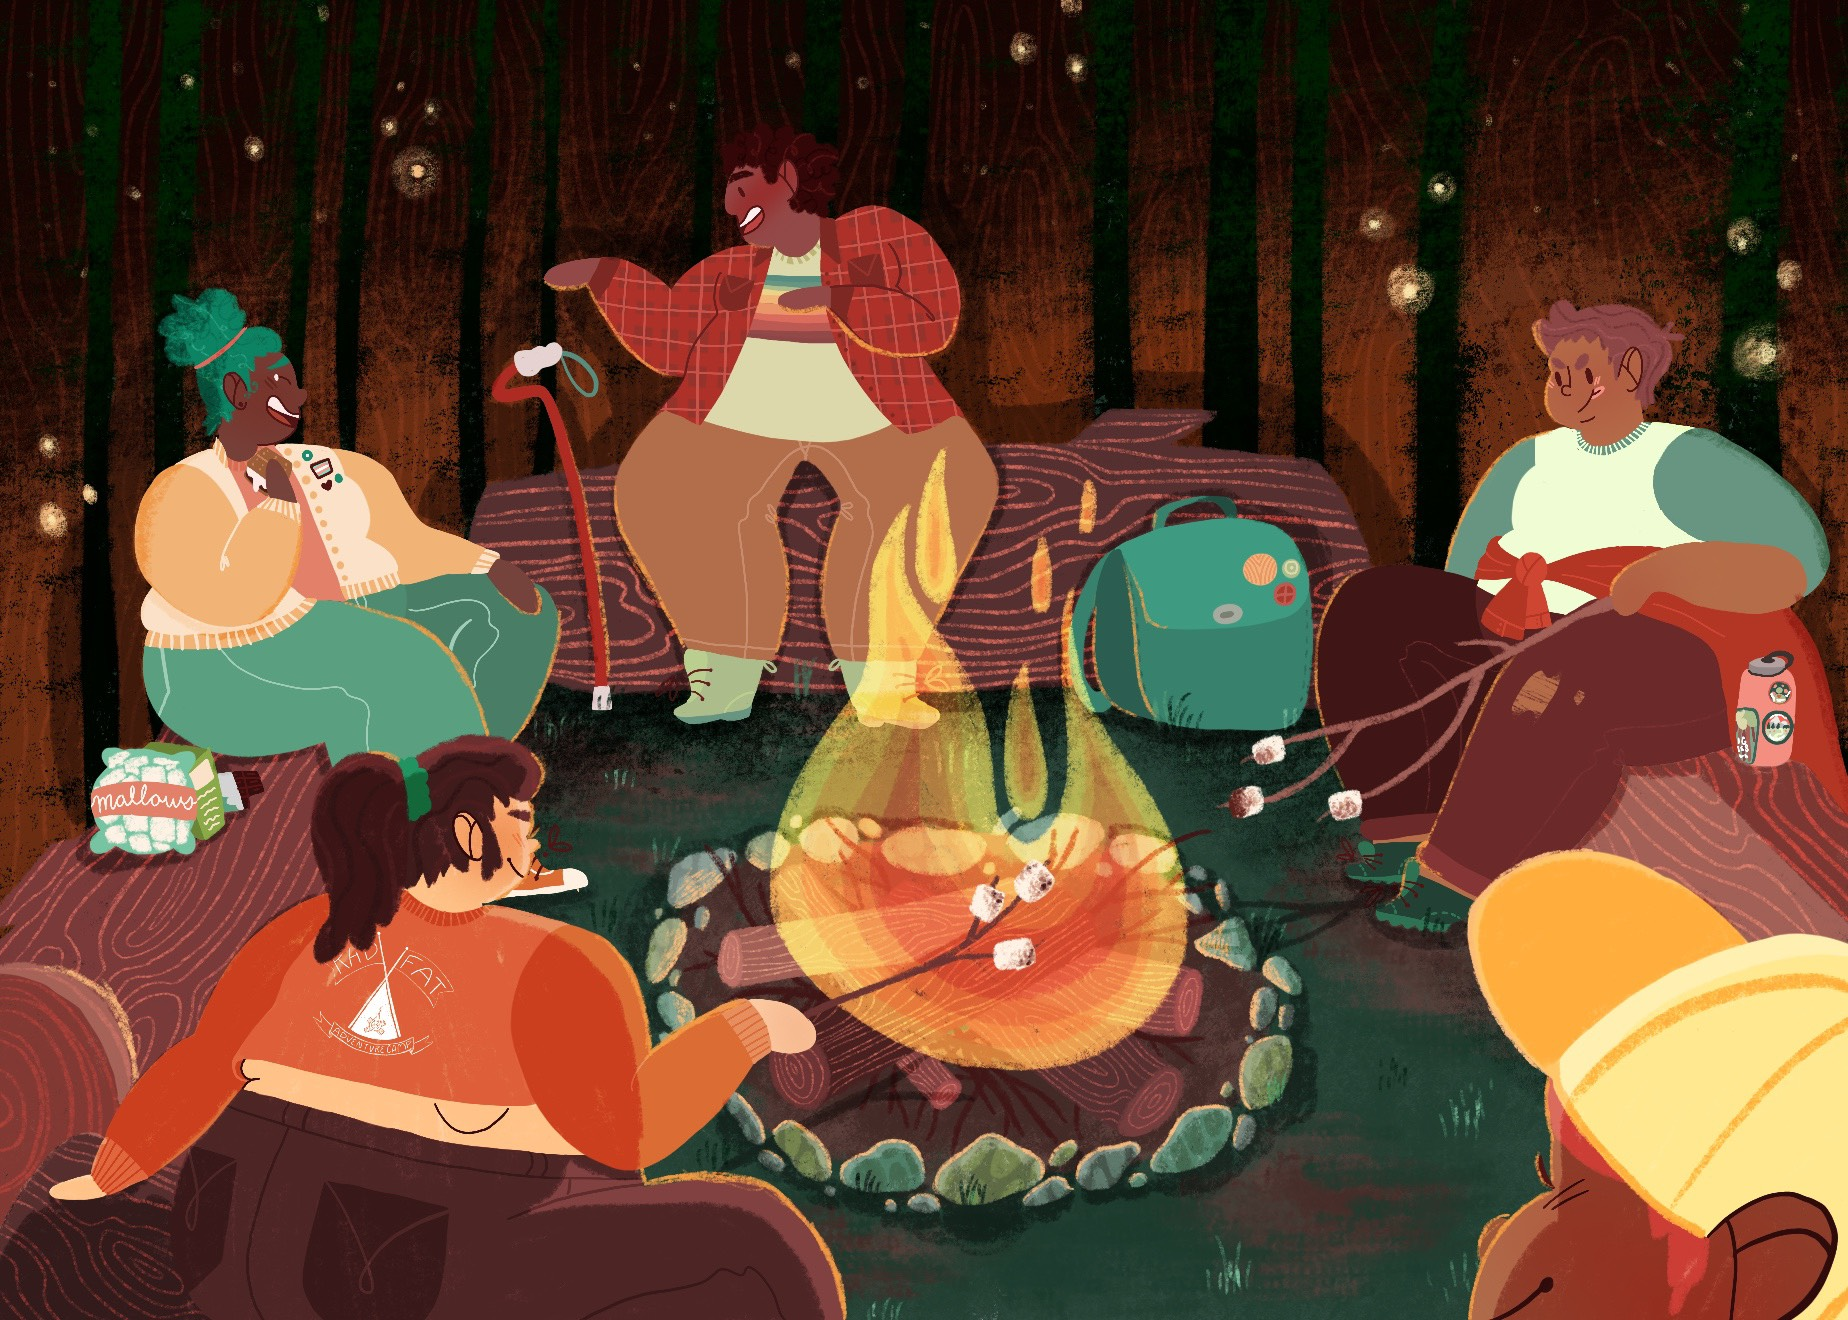 Exclusive illustration just for Rad Fat Adventure campers!  Image description: five fat campers around a campfire roasting marshmallows, laughing and talking.